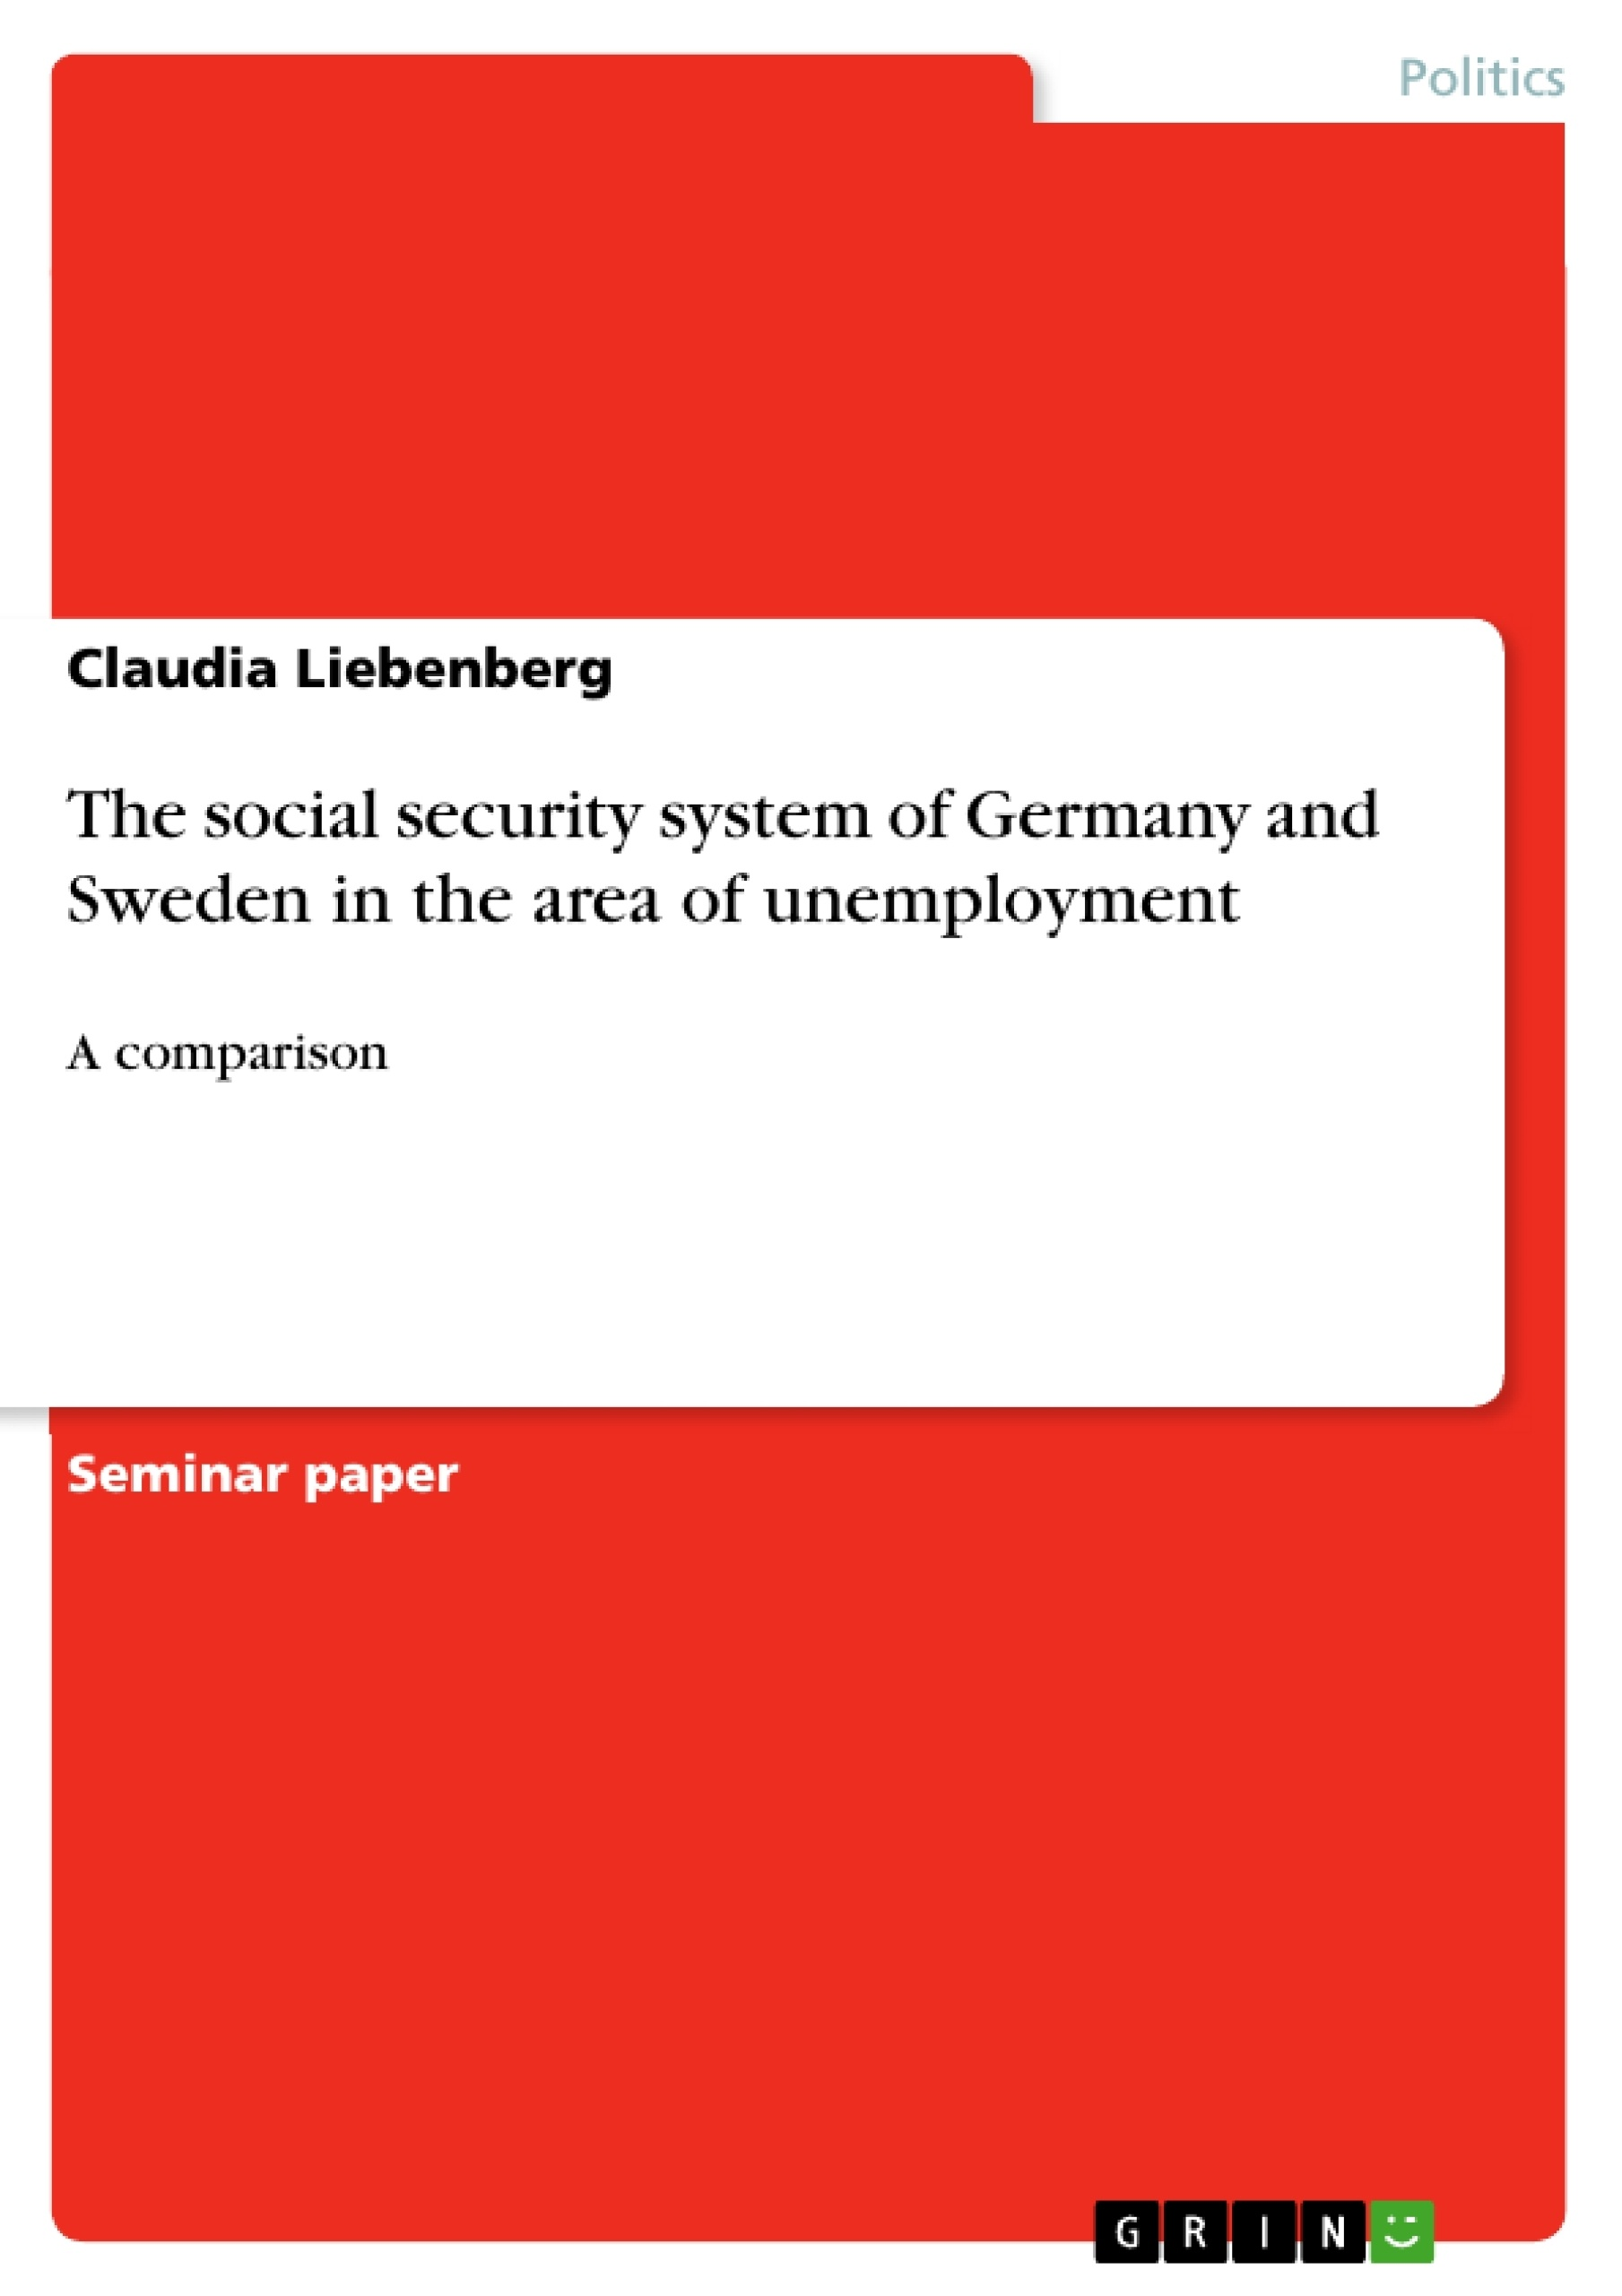 Title: The social security system of Germany and Sweden in the area of unemployment